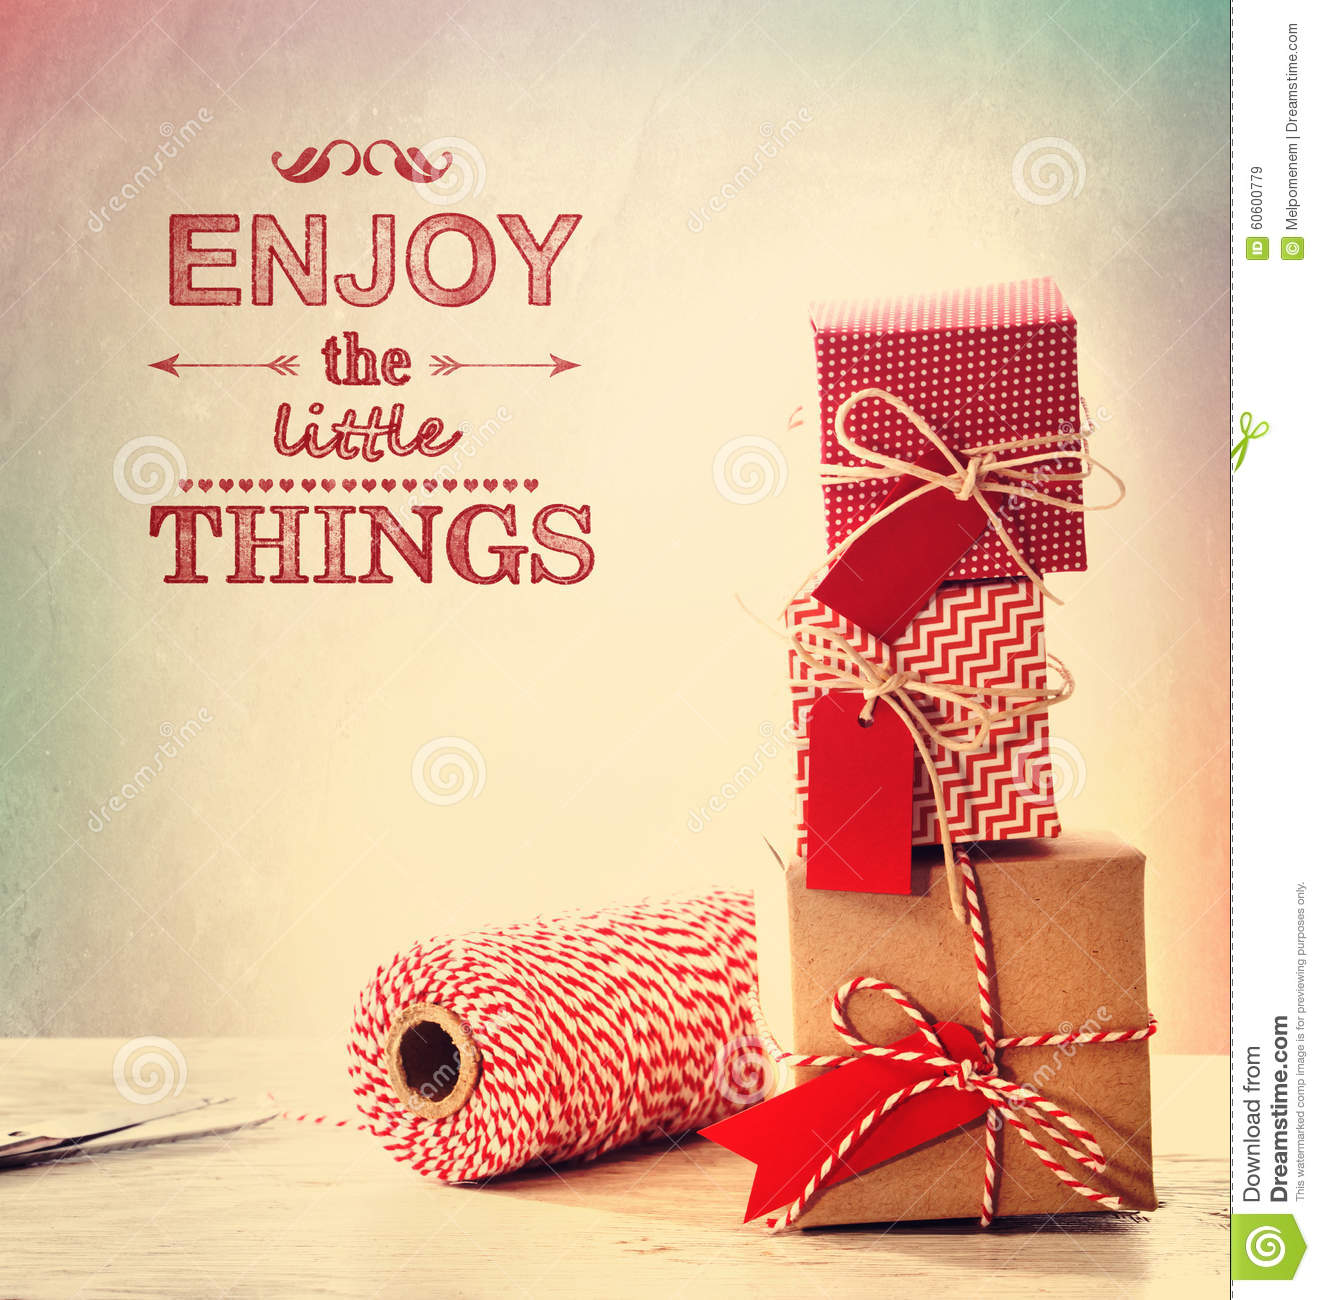 Enjoy the little things with small gift boxes